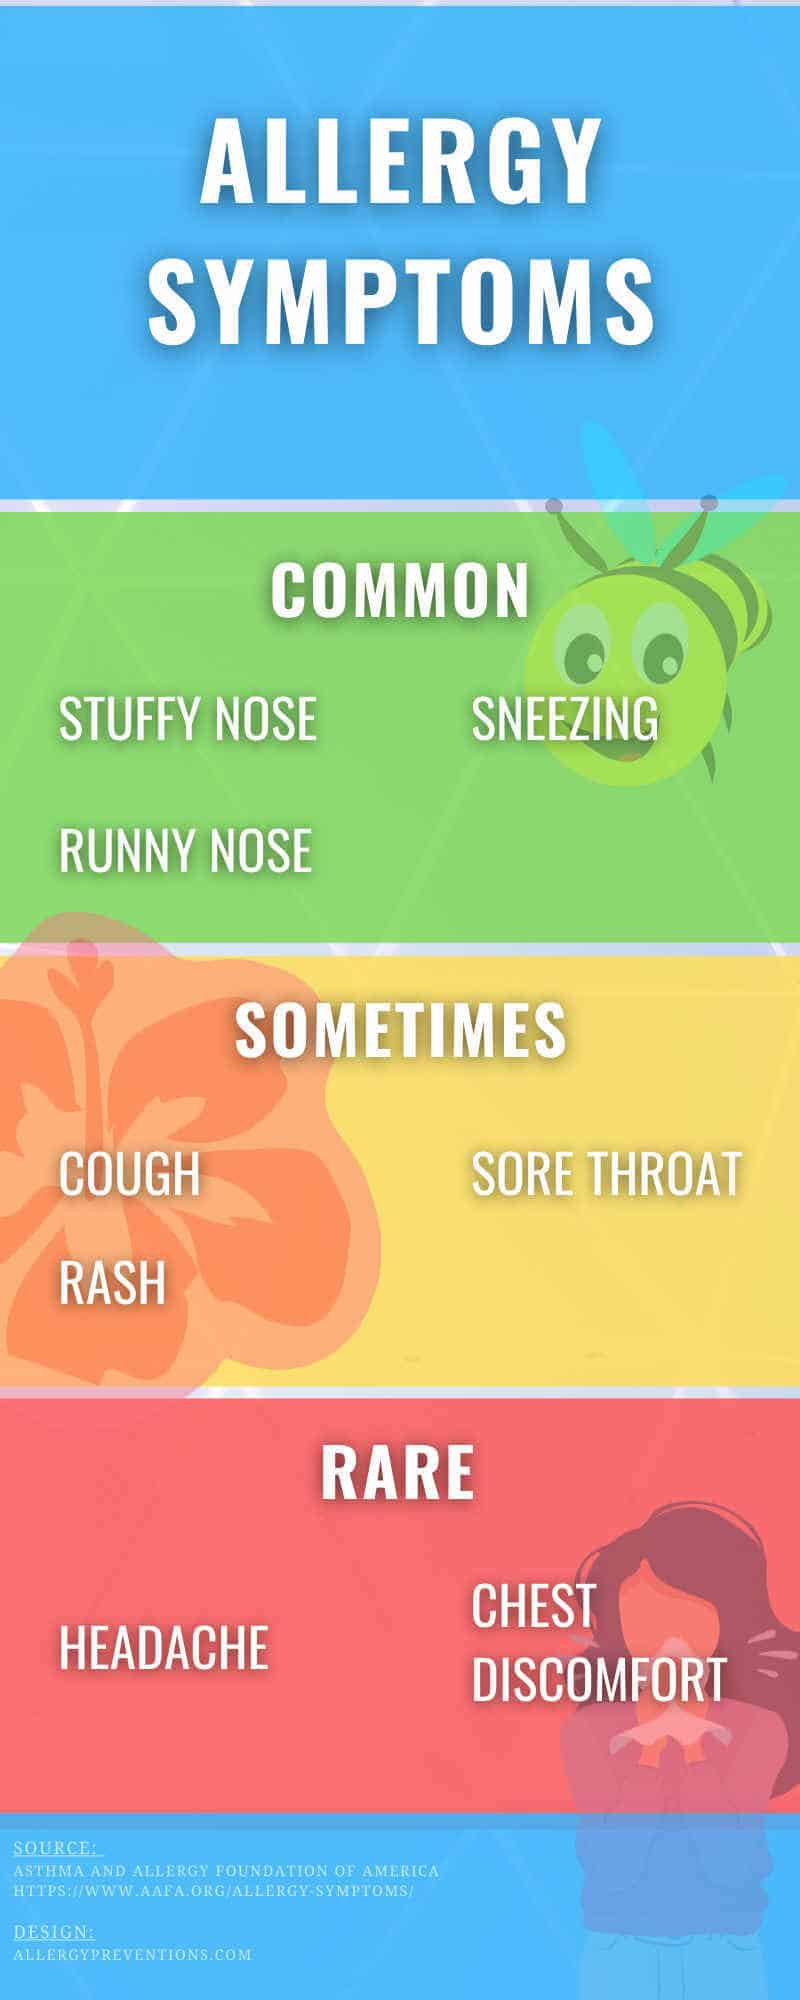 allergy symptoms infographic- common symptoms (stuffy nose, runny nose, sneezing), uncommon (chest discomfort, body aches and pains), rare (headache, rash, chills, fever).